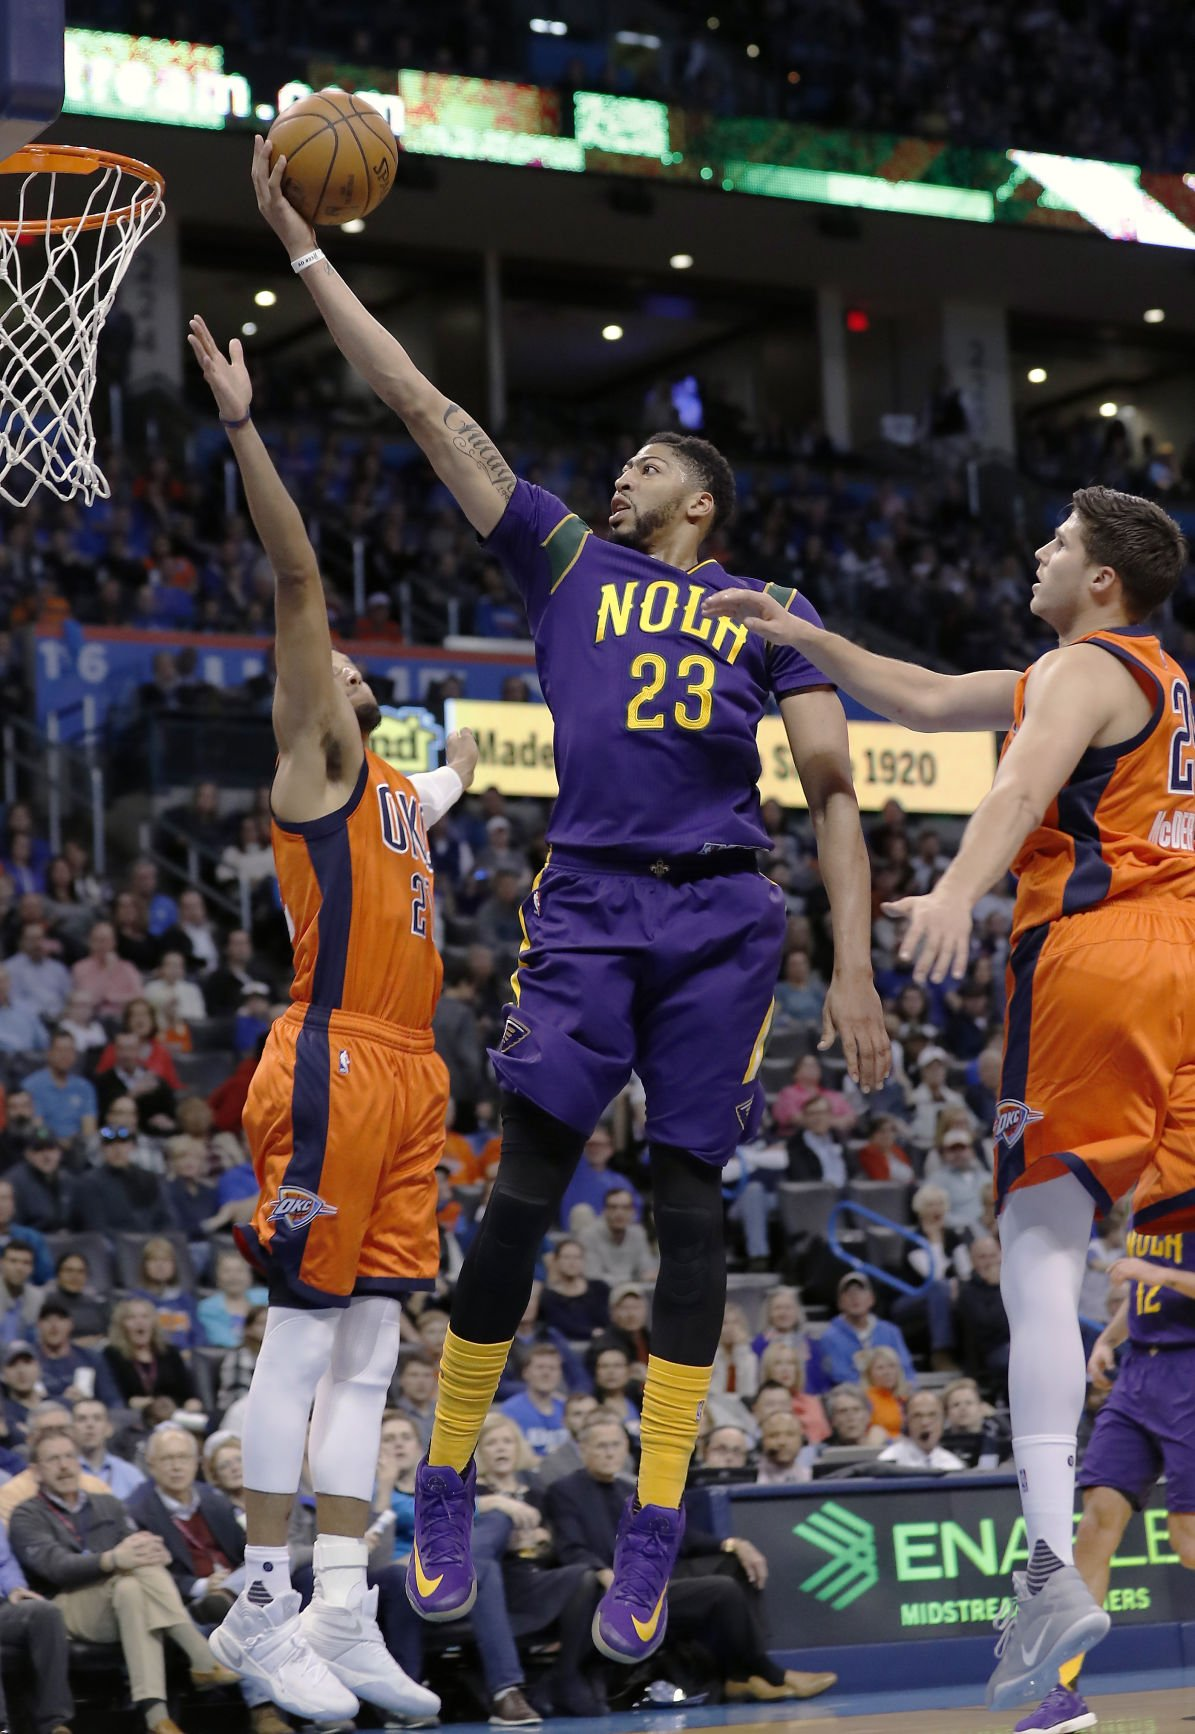 Foul Trouble Technicals Floor Pelicans In Loss To Thunder